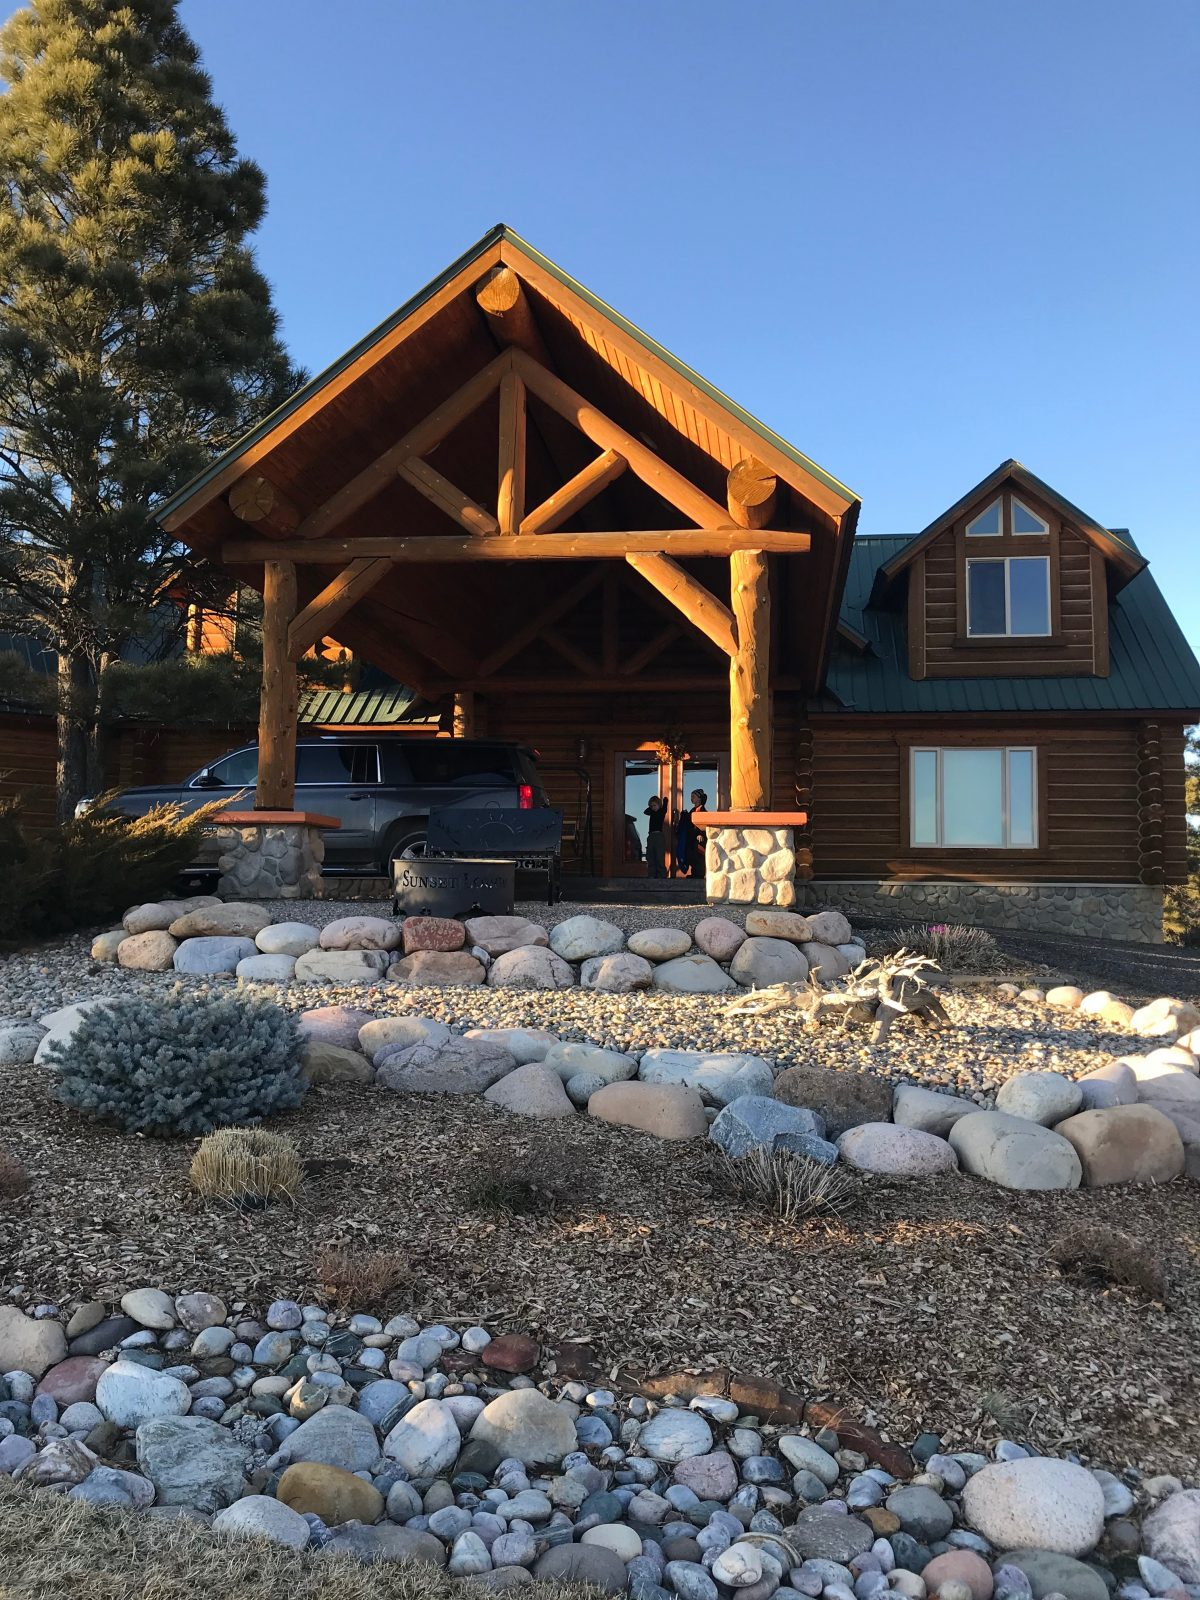 Family ski trip with toddler - cabin in Pagosa Springs, Colorado